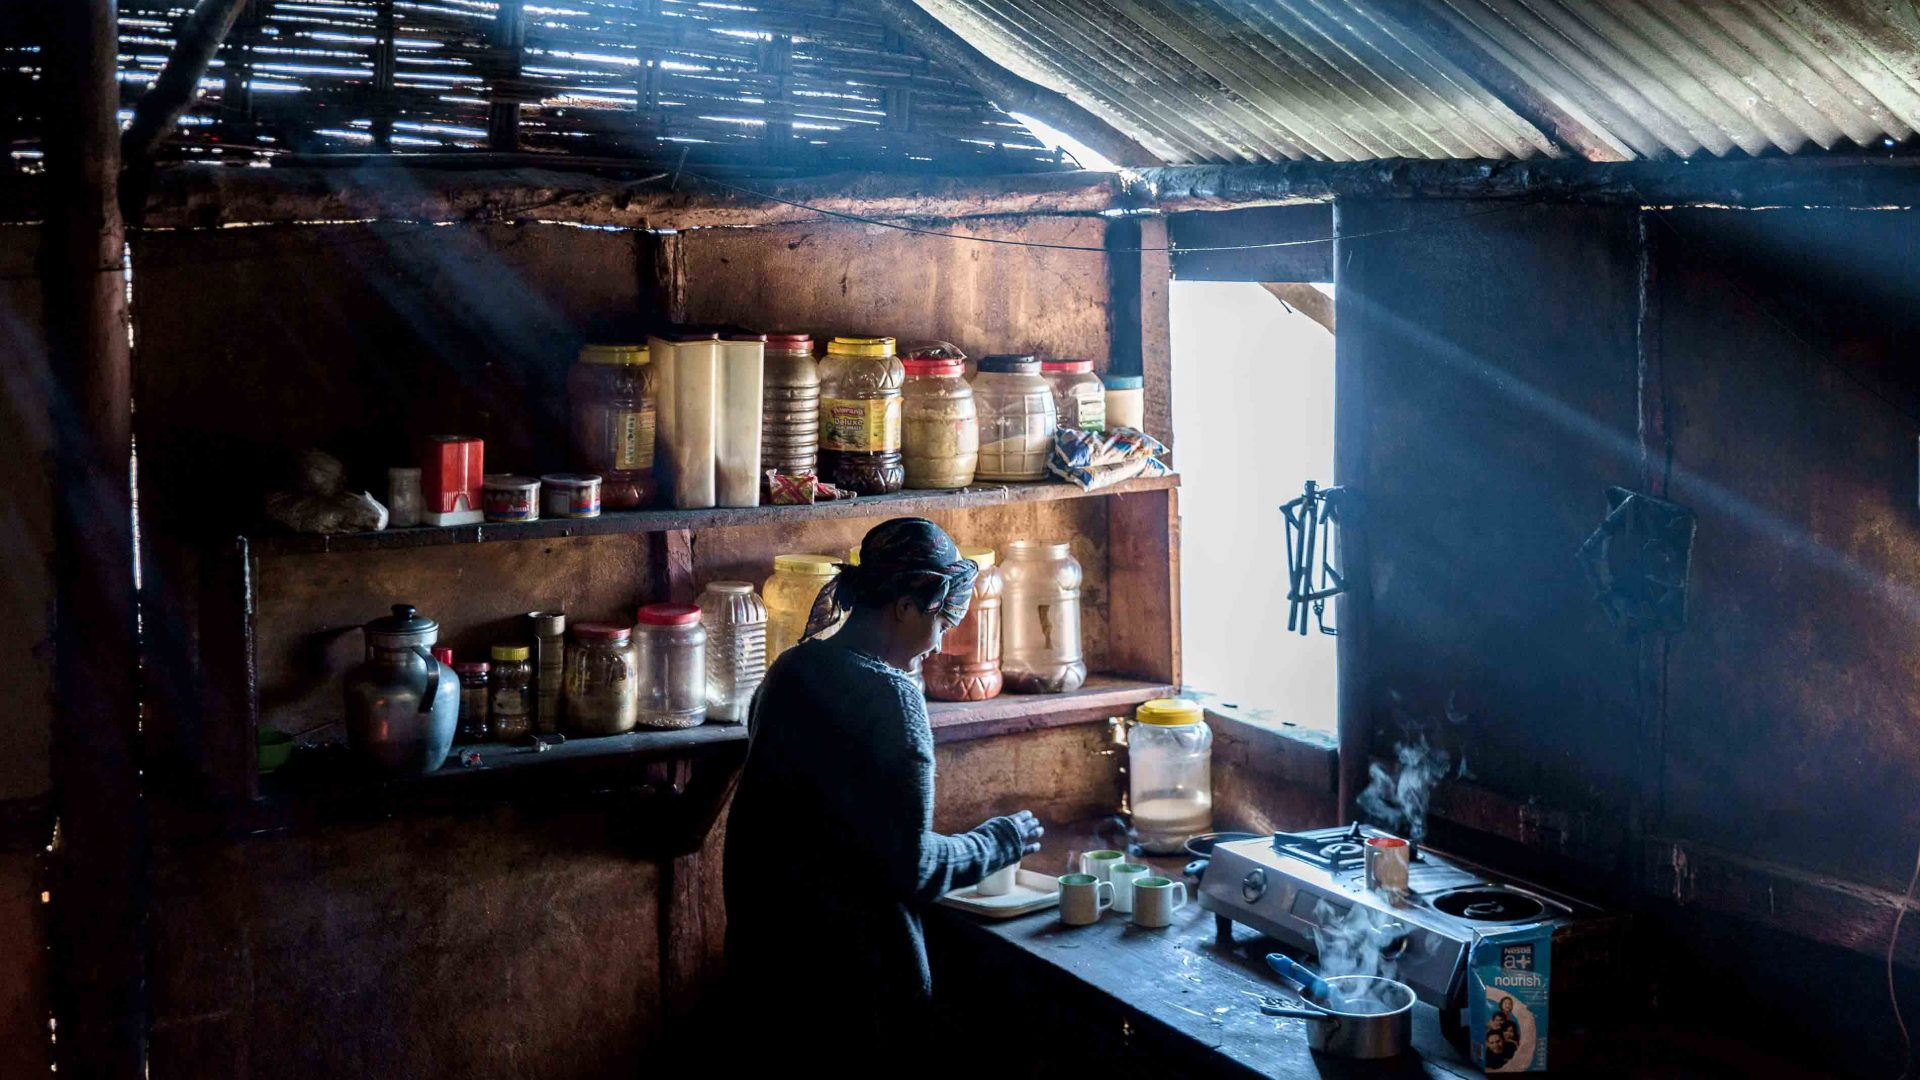 A woman makes tea in a Monpa kitchen in Arunachal Pradesh, India.